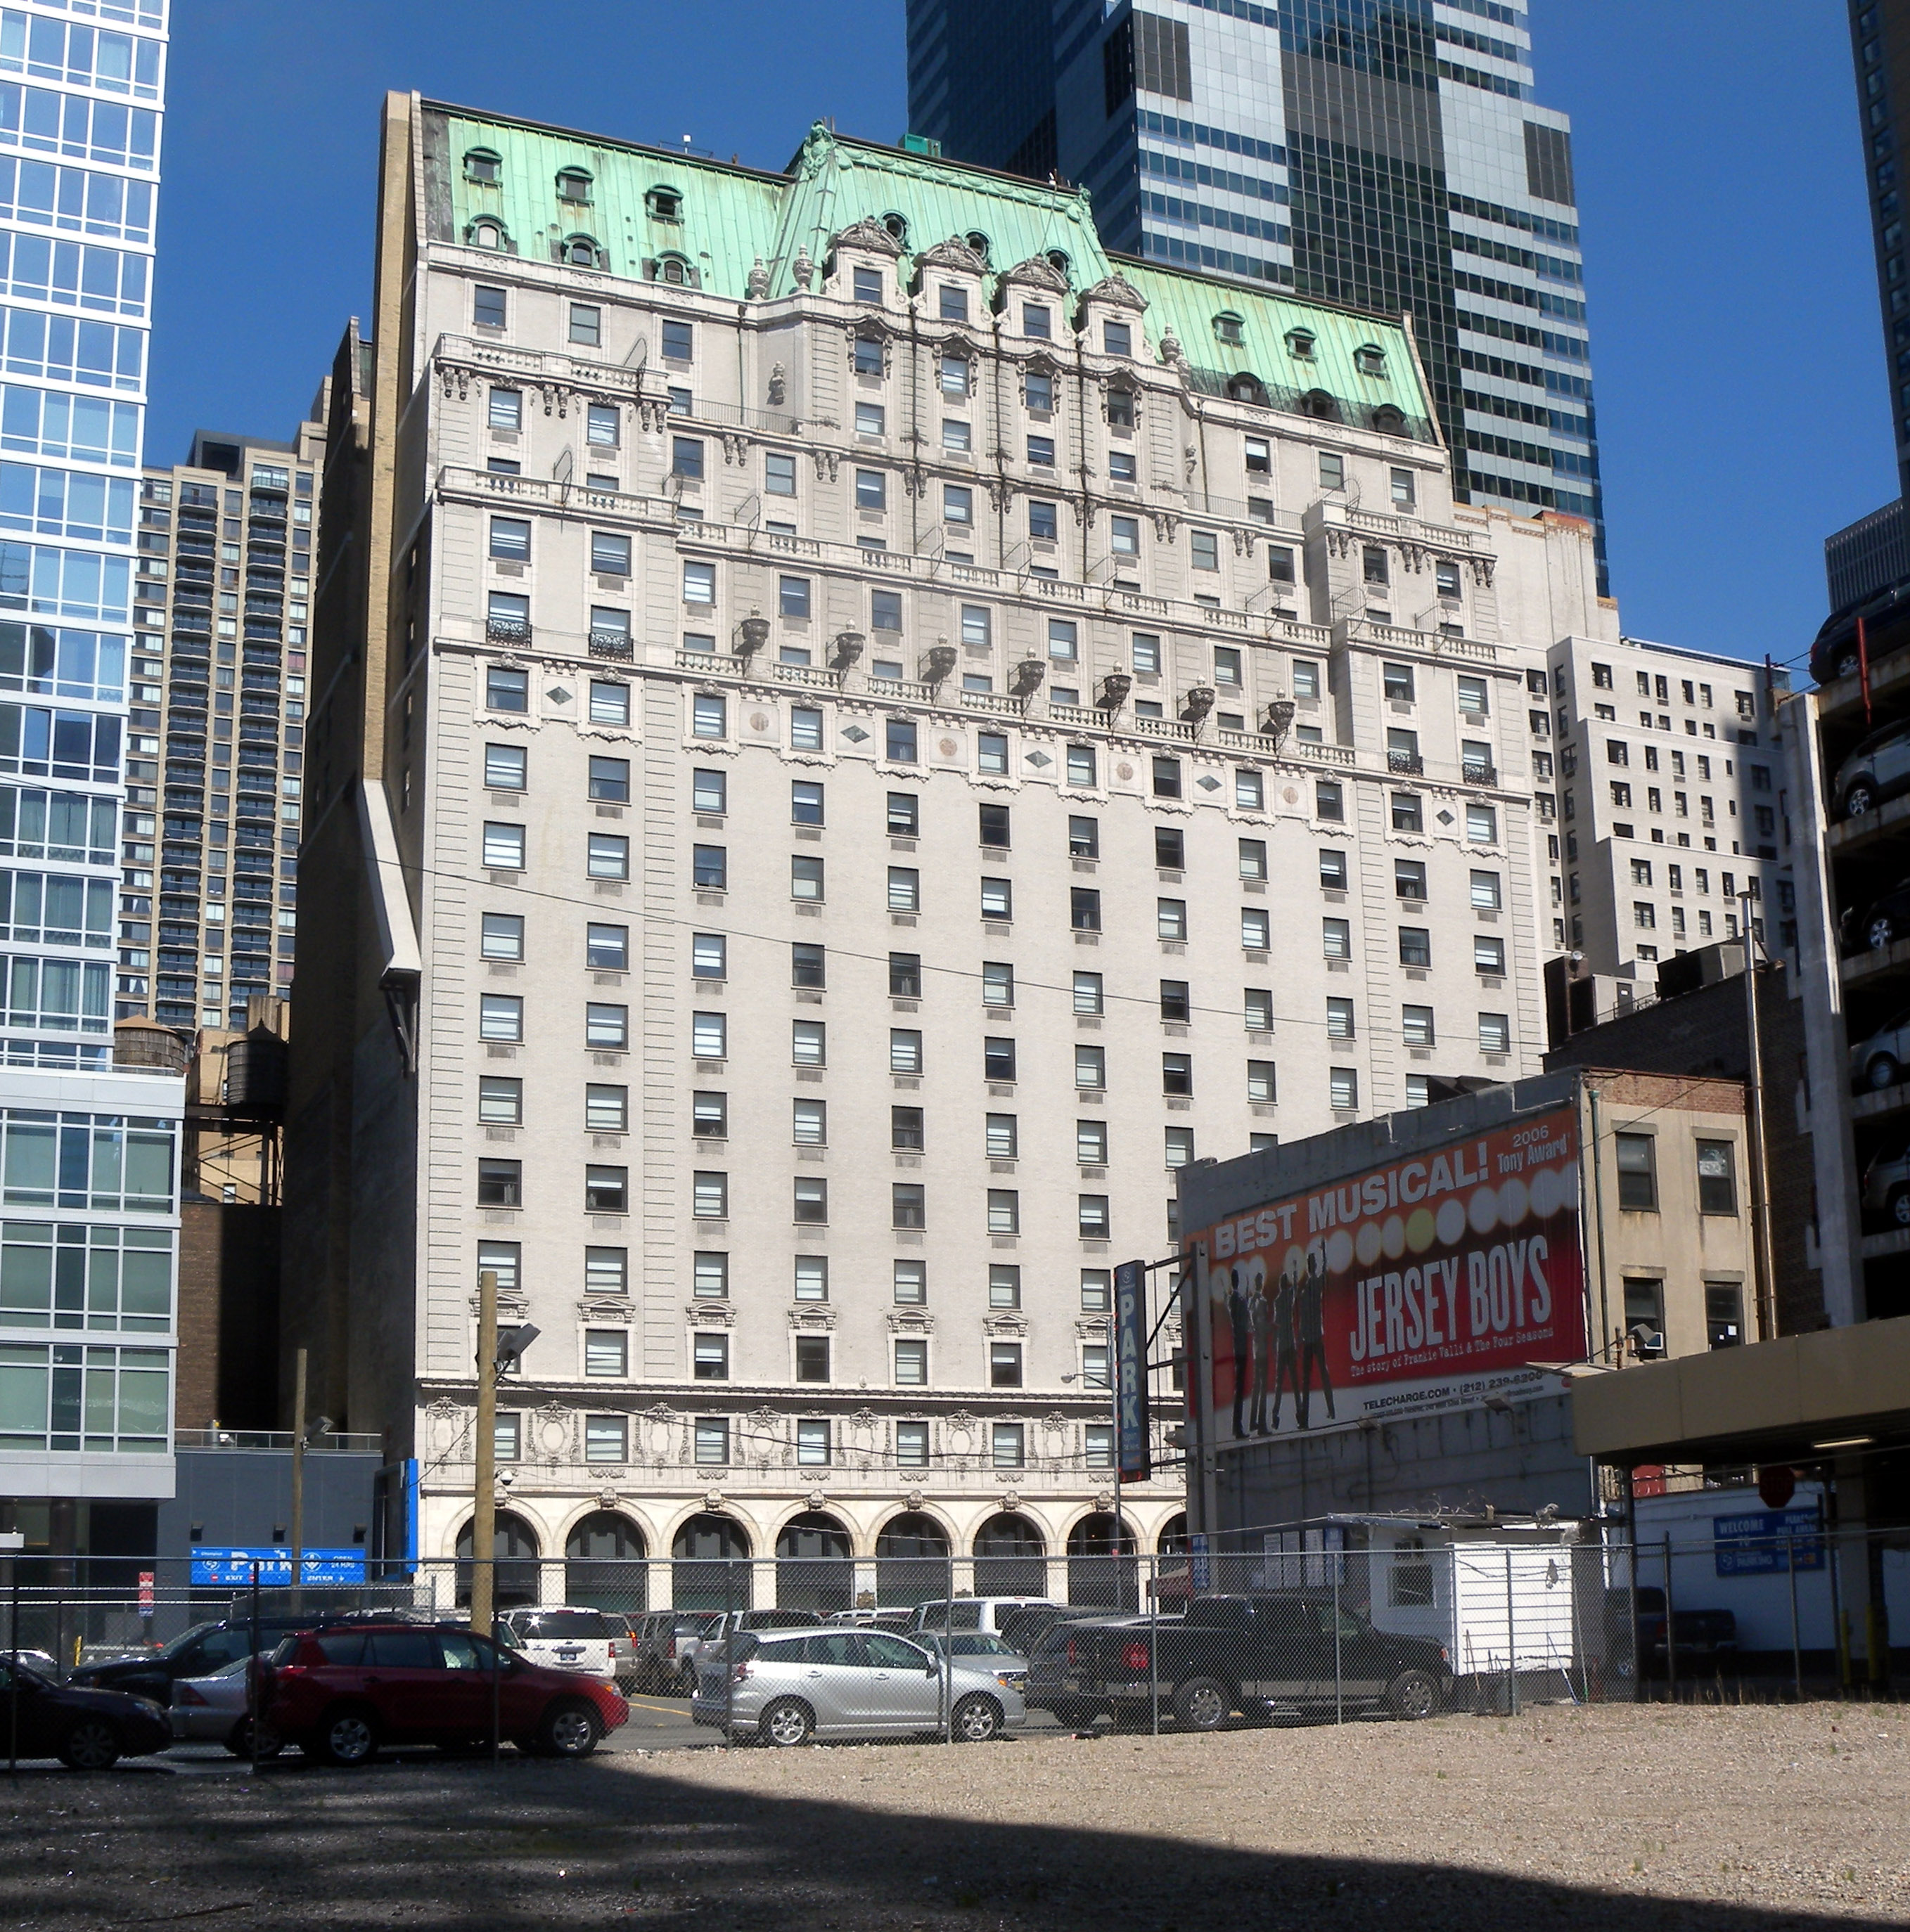 Recommended hotels in new york for your city break stein for Hotel new york